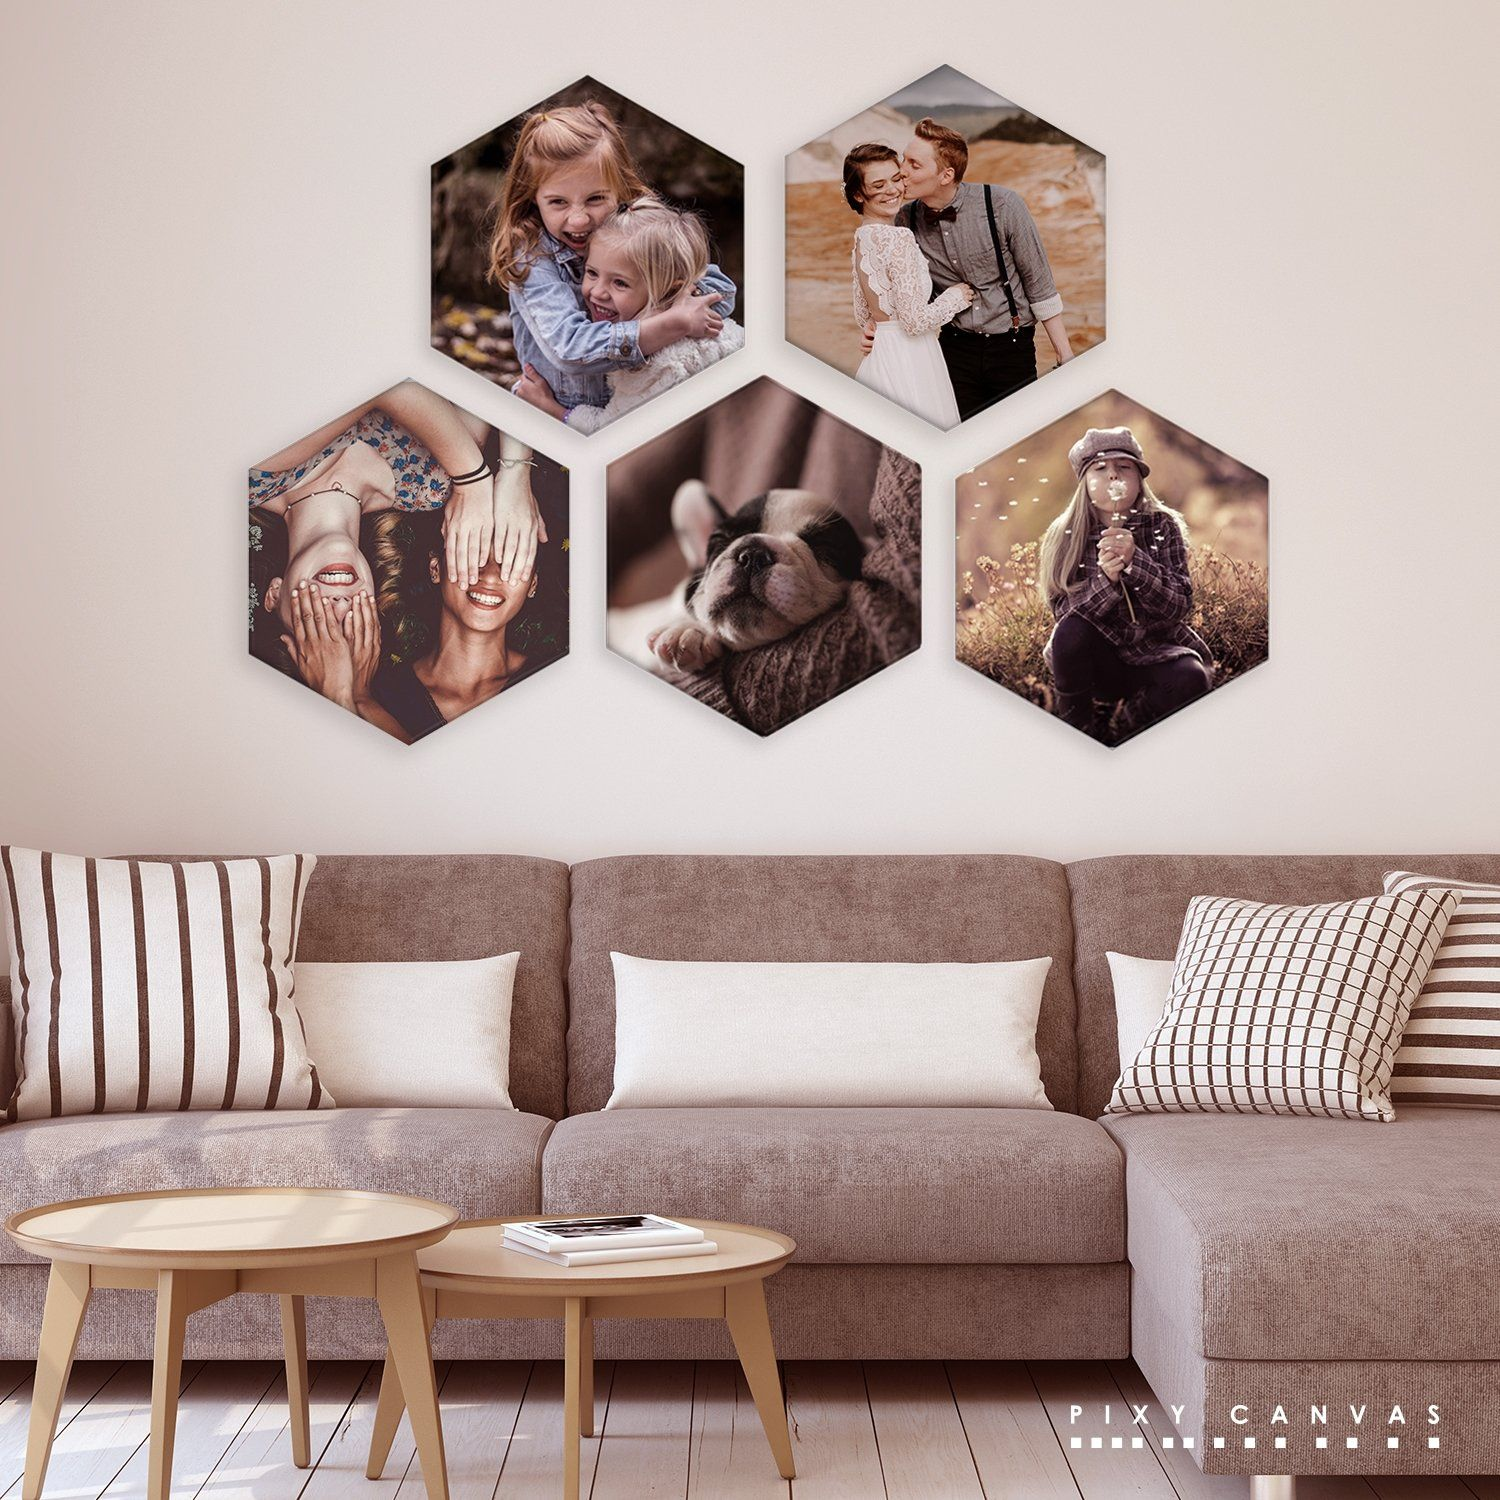 Photo On Honeycomb Canvas Vertical Hexagon Wall Art Create Your Unique Gift For Yourself And Your Fam Canvas Wall Collage Canvas Photo Wall Photo Wall Decor